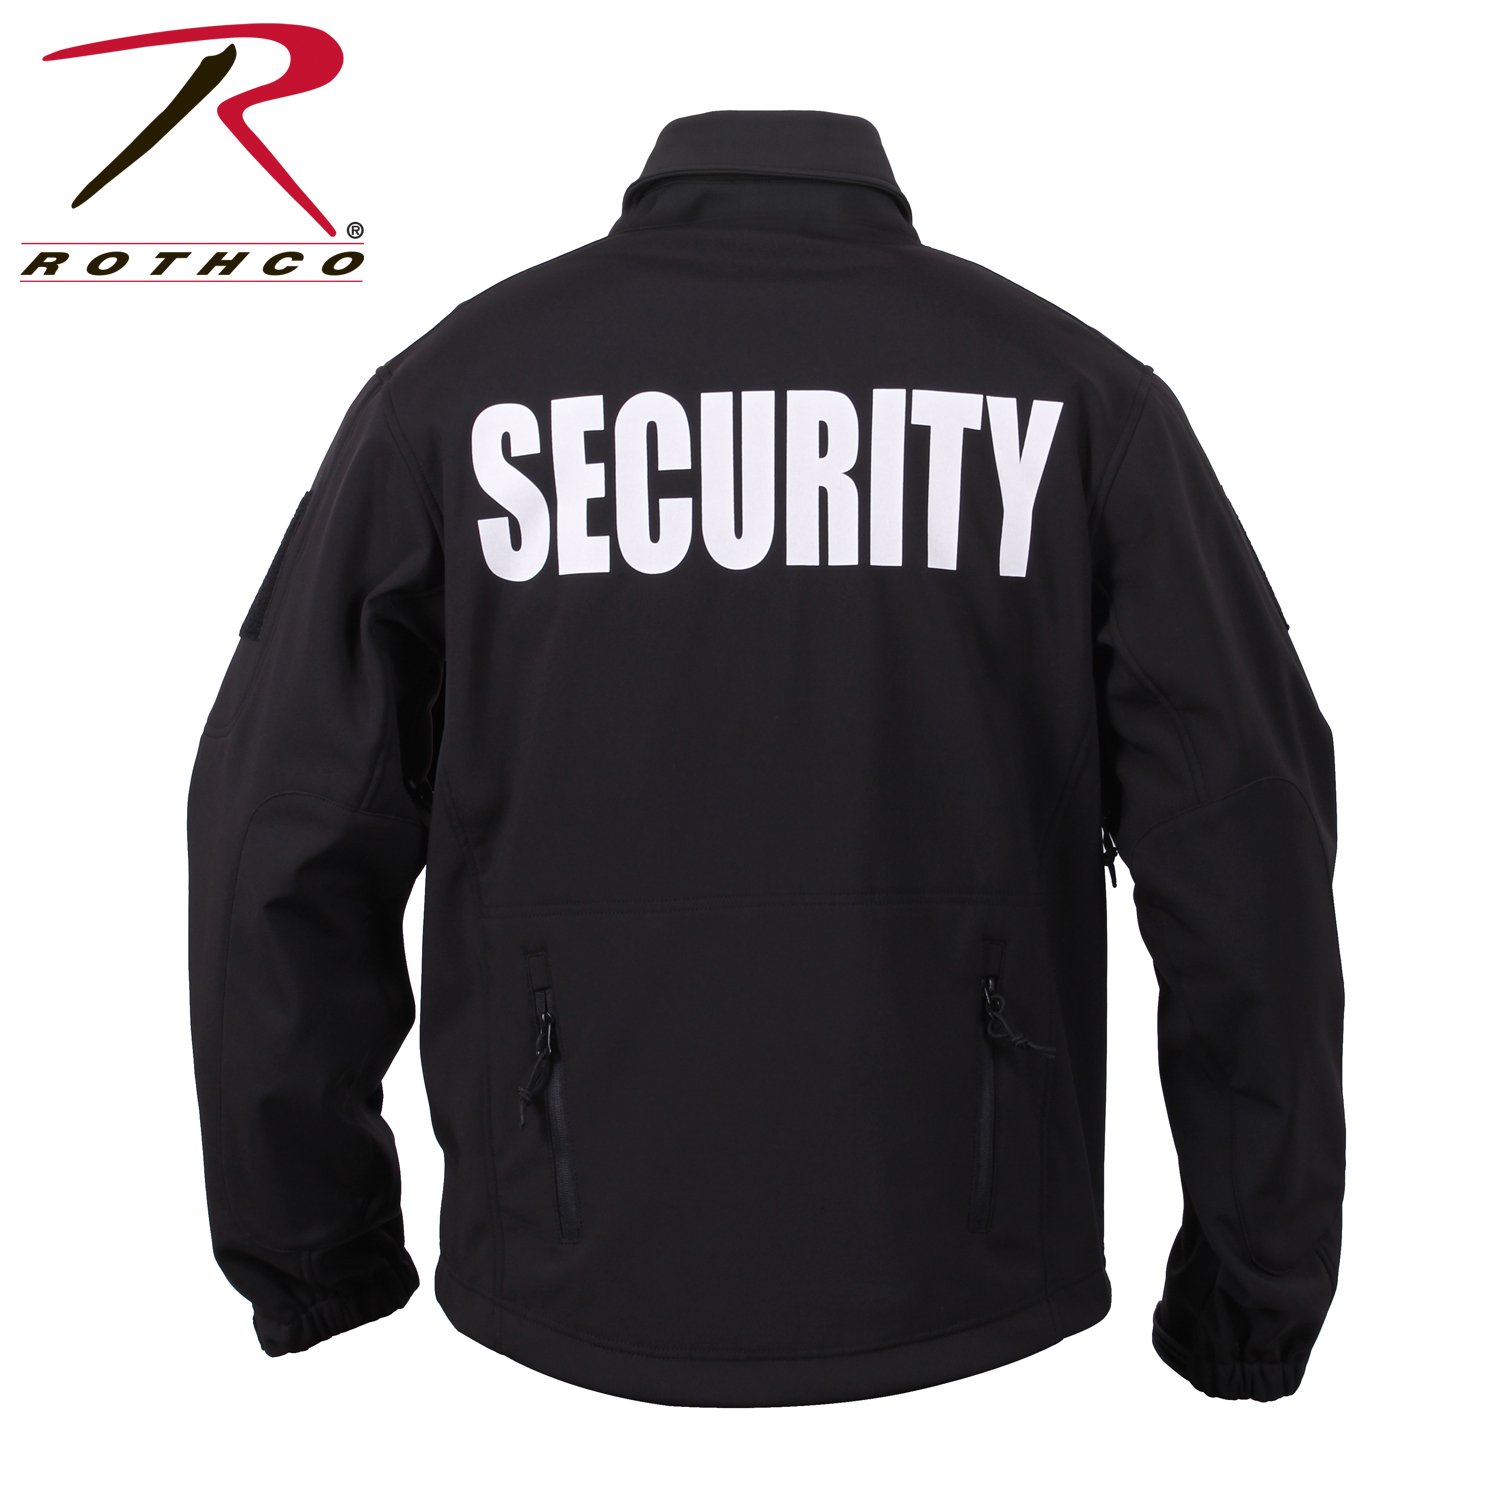 415bf05b5 Rothco Special Ops Soft Shell Security Jacket